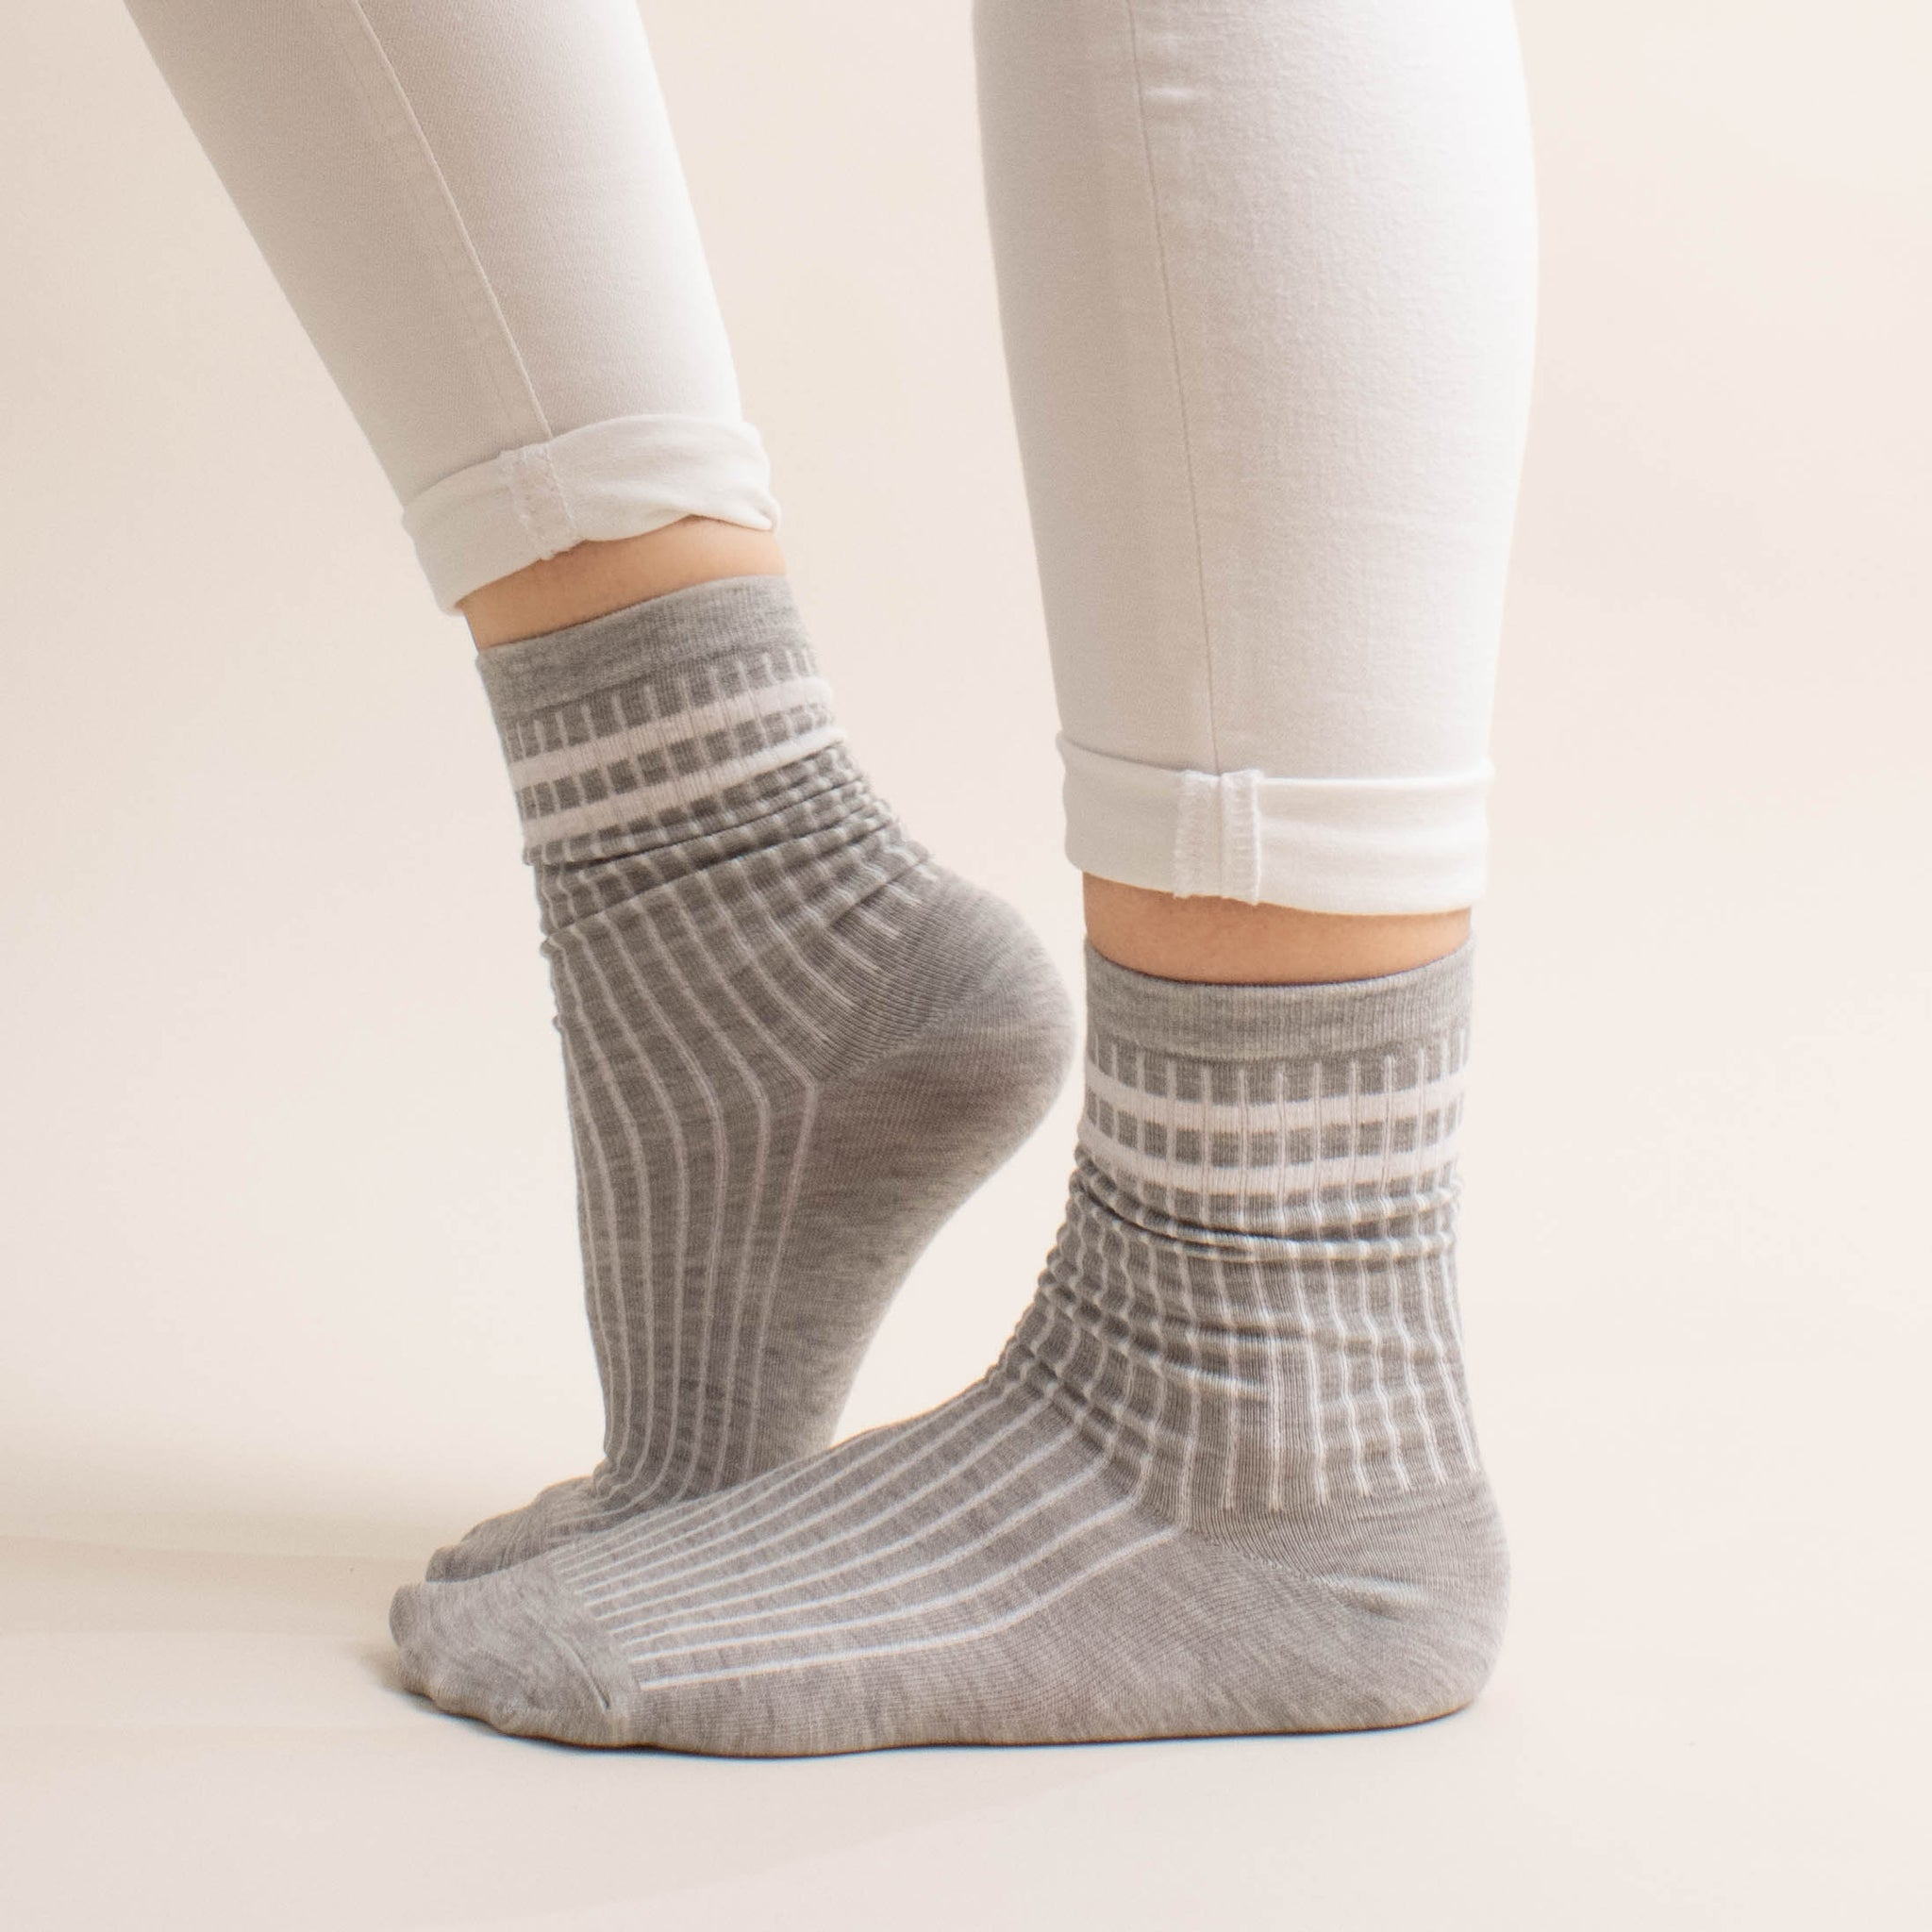 the athletic sock